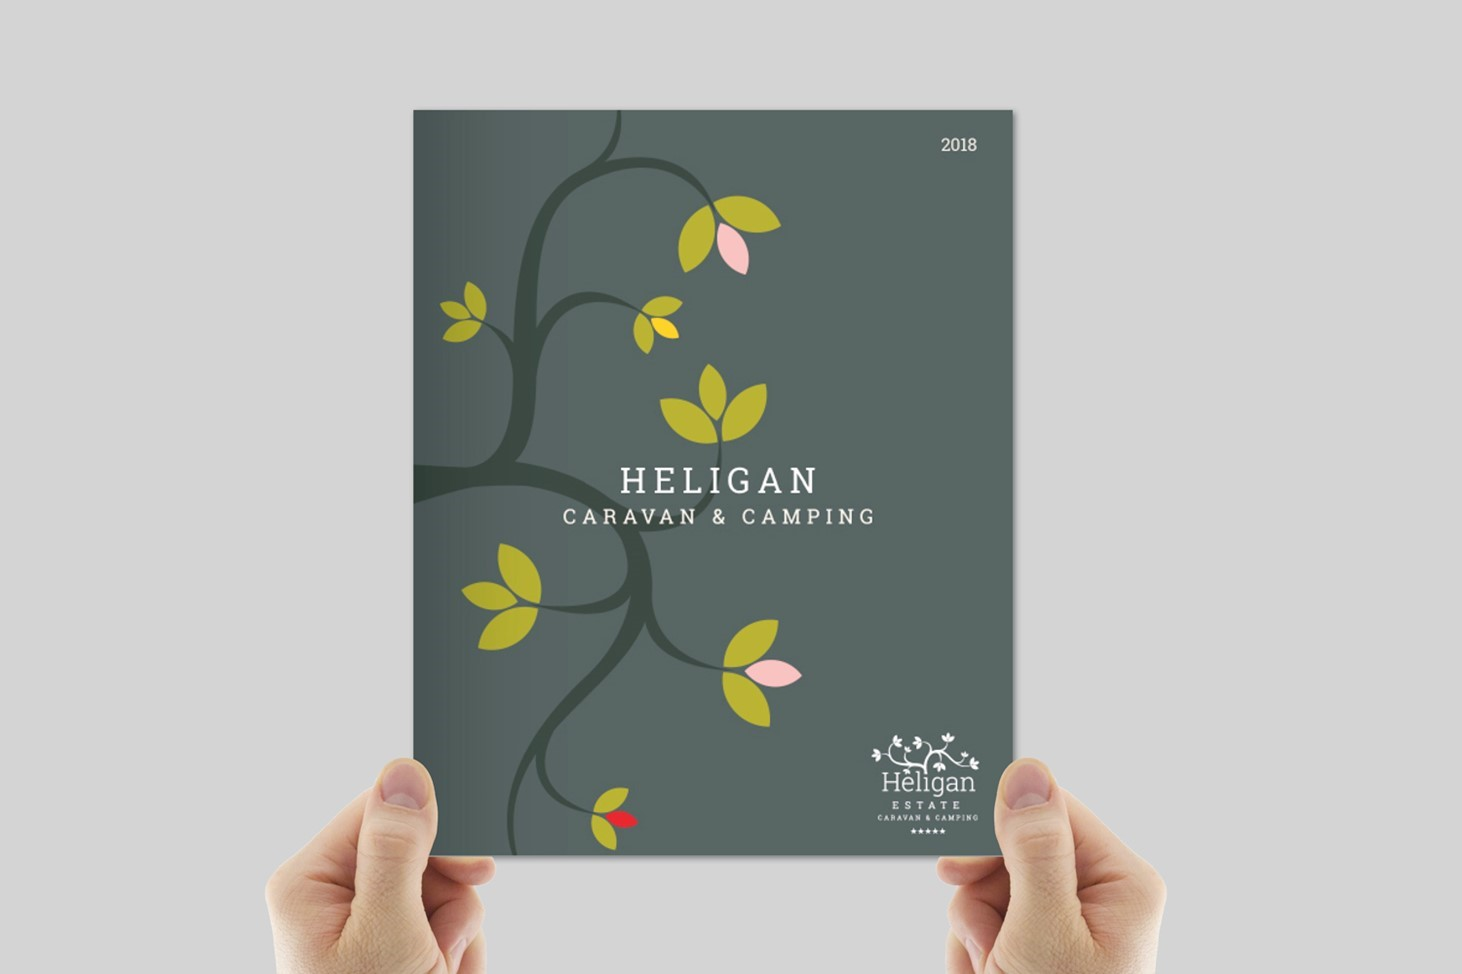 Heligan, camping and caravan, brochure, tree, green, design, Print, Cornwall, Design79, silhouettes, logo, booklet, graphic design